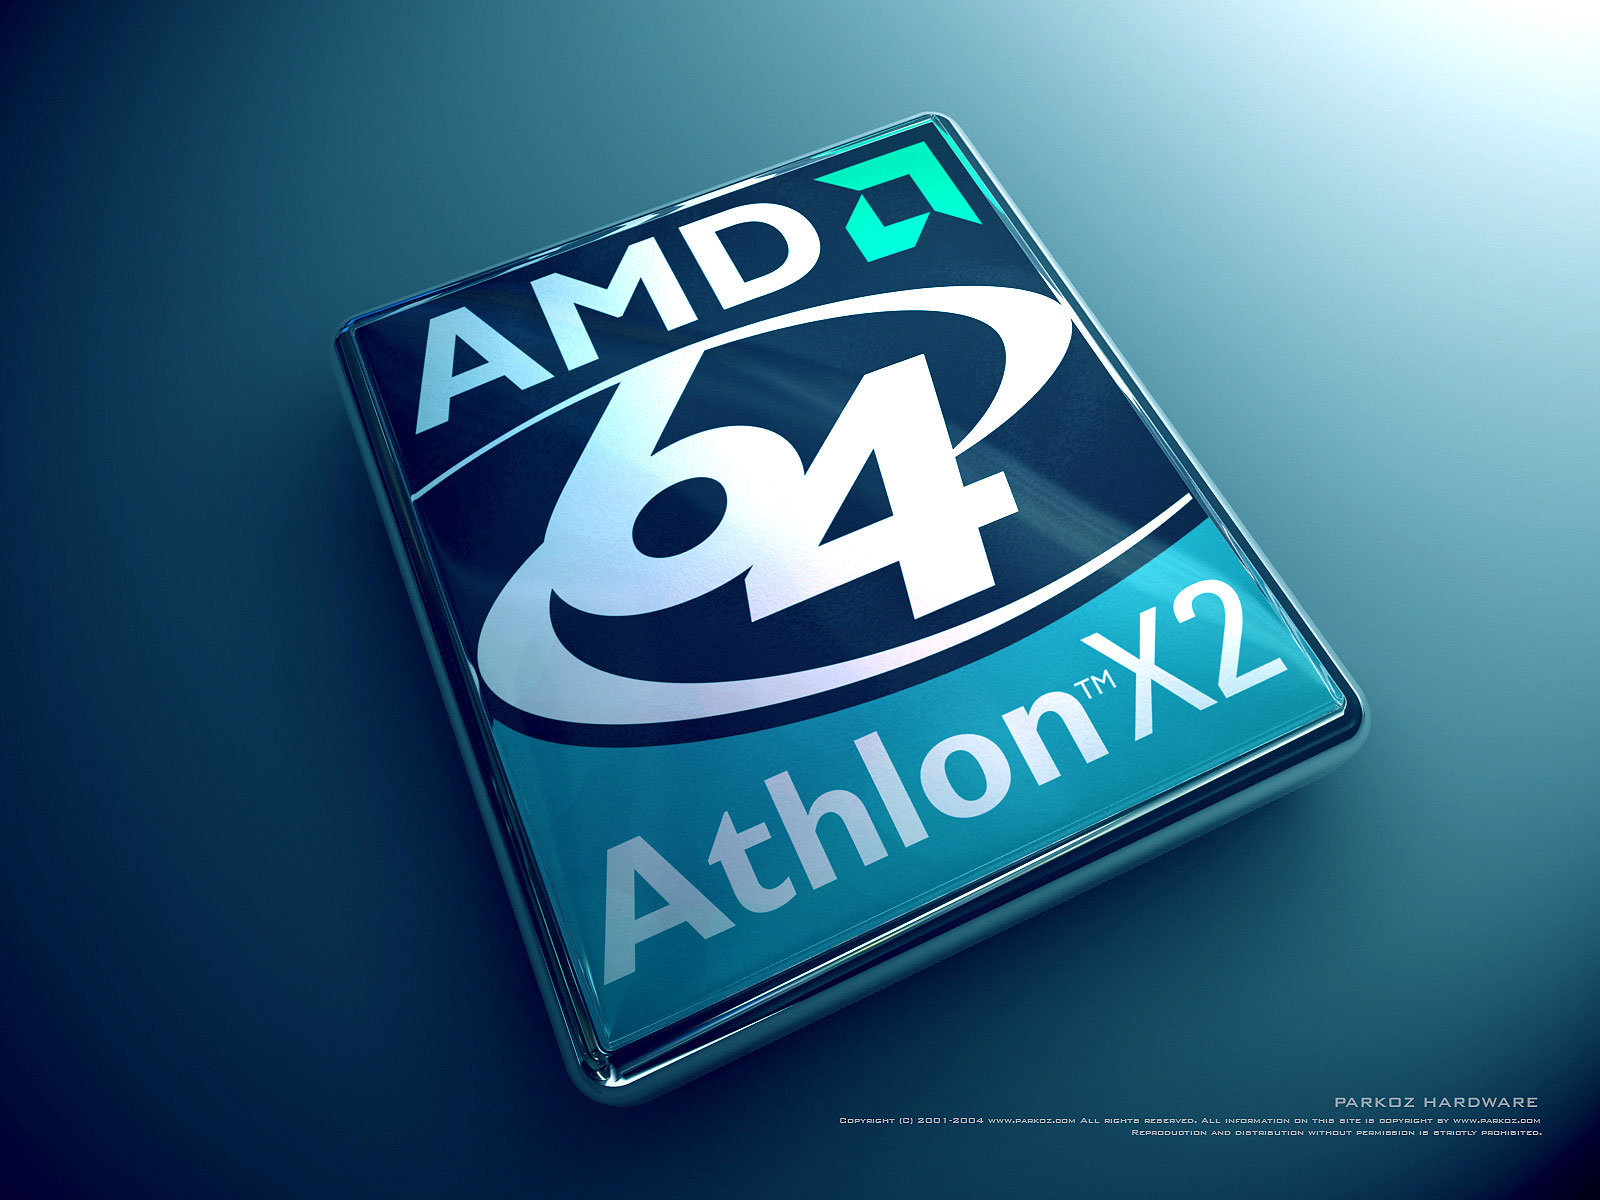 amd64 x2 wallpaper i - photo #1